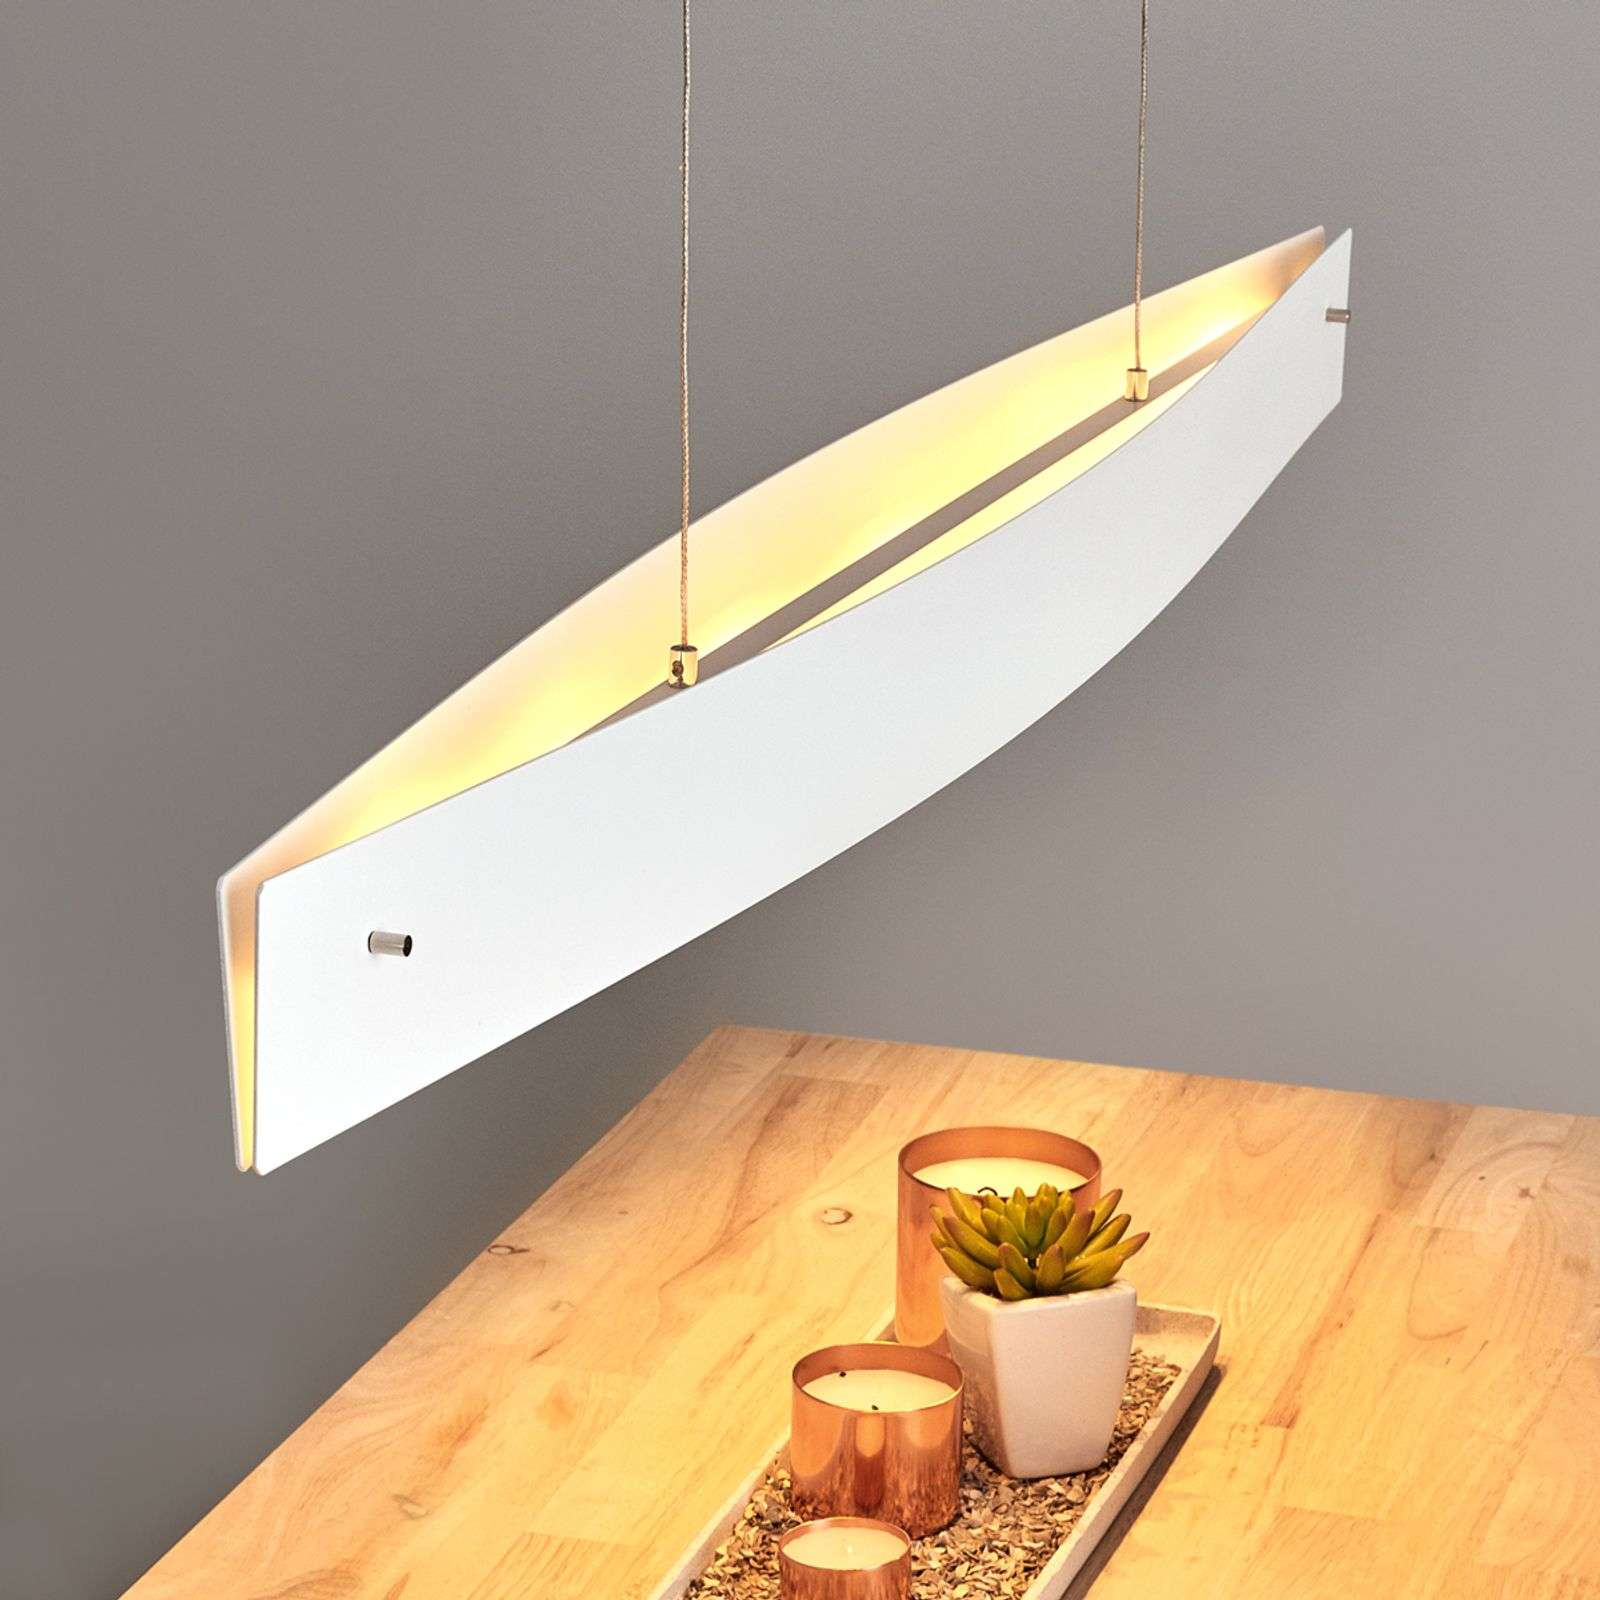 Suspension LED Malu, à intensité variable, 119 cm